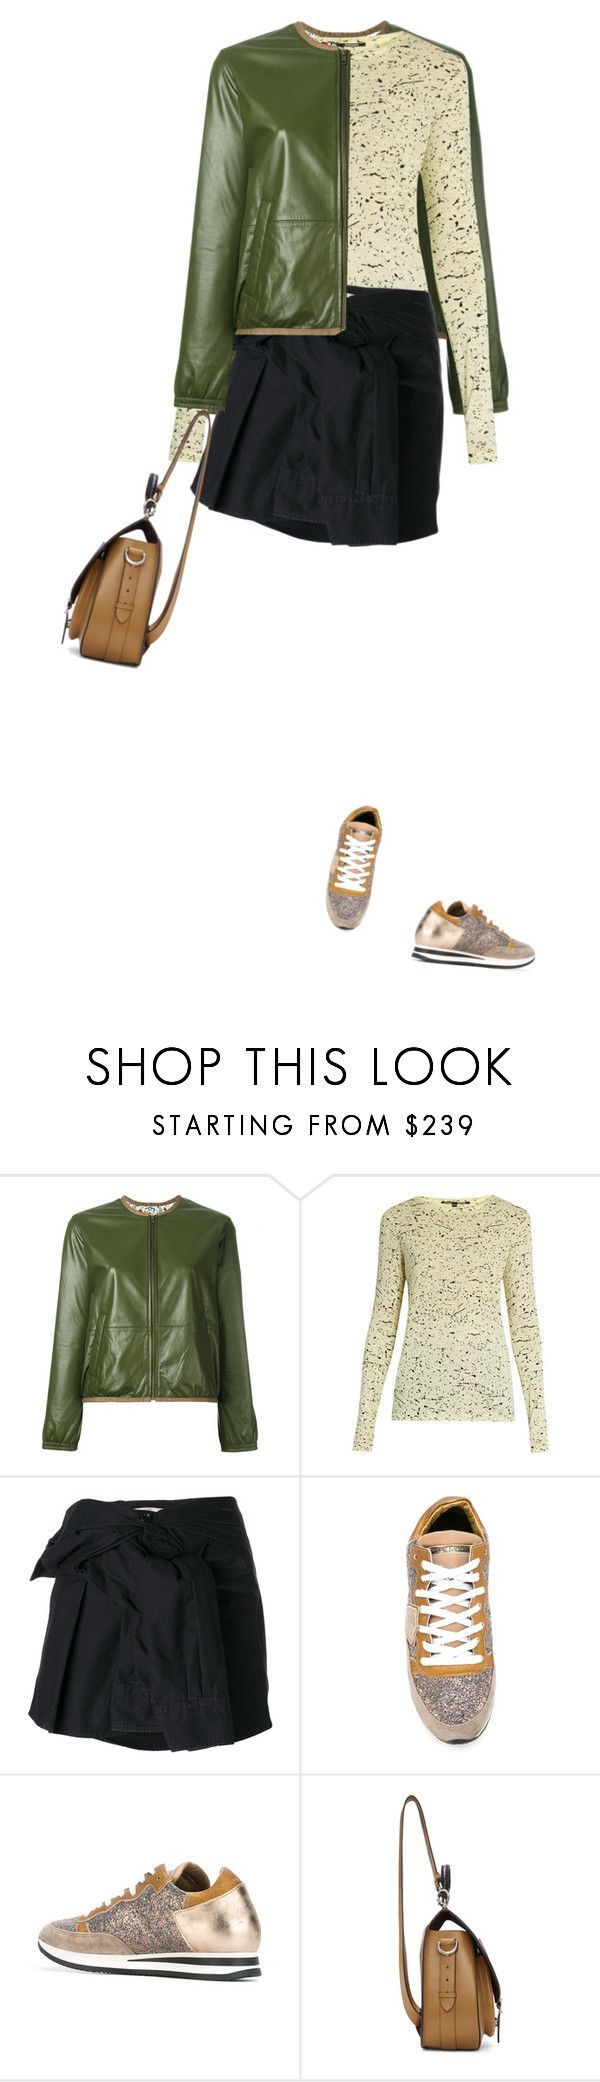 """""""Shirt Skirt By Faith Connexion"""" by carolinez1 ❤ liked on Polyvore featuring BELLEROSE, Proenza Schouler, Faith Connexion, Philippe Model and Maison Margiela"""